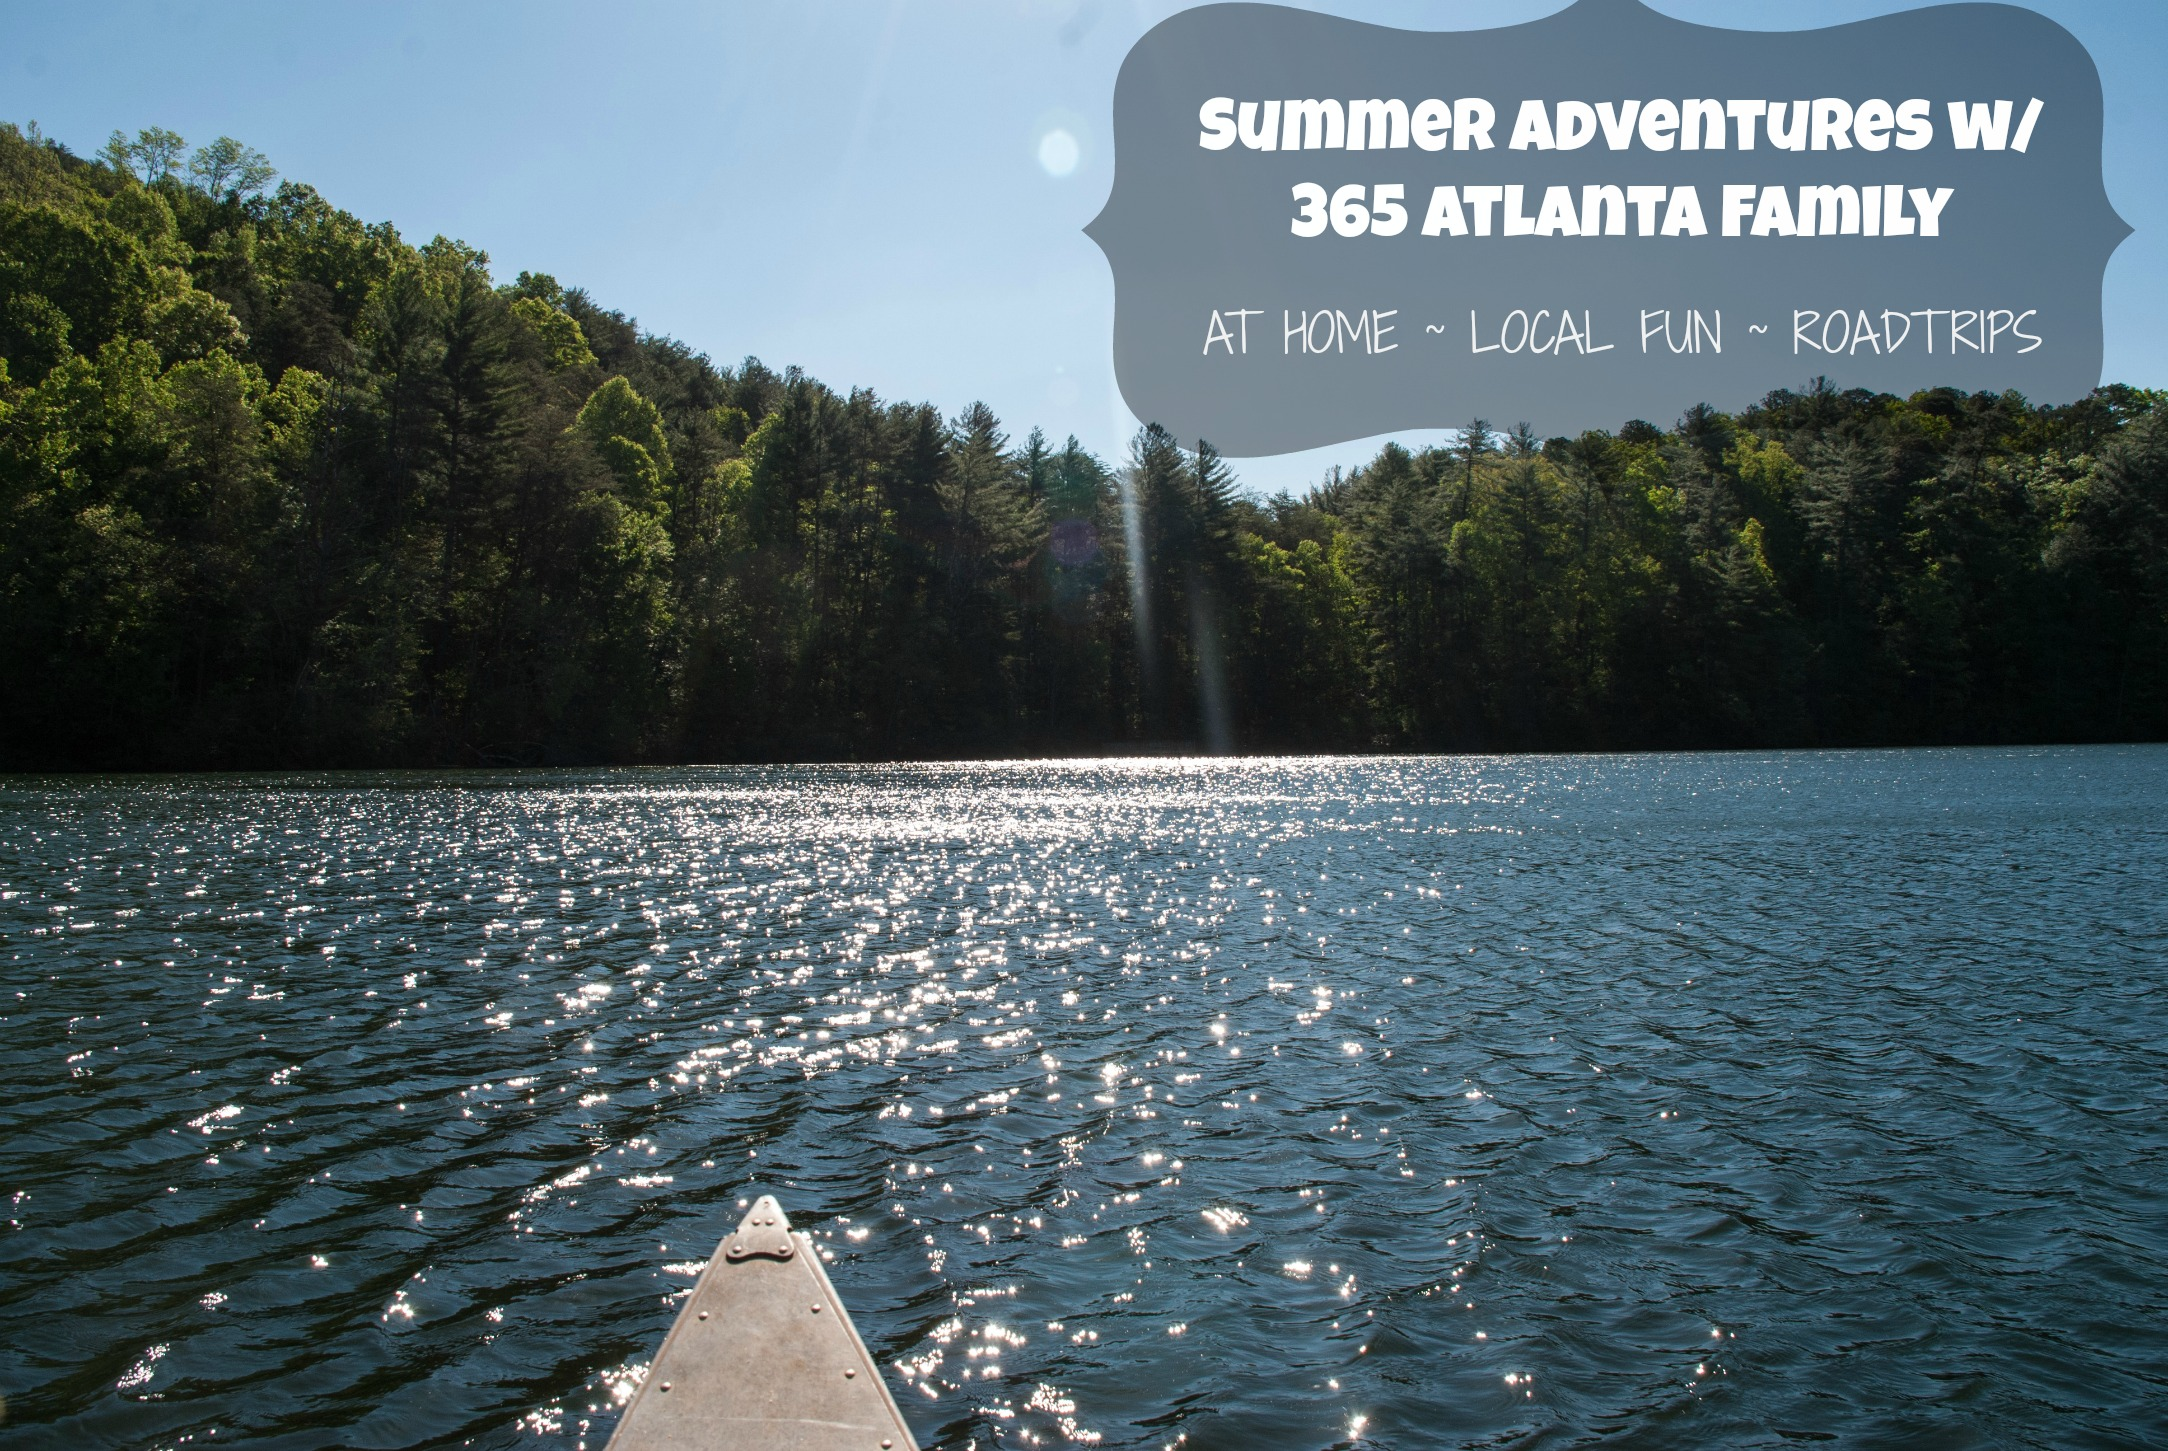 things to do in atlanta for summer from 365 Atlanta Family